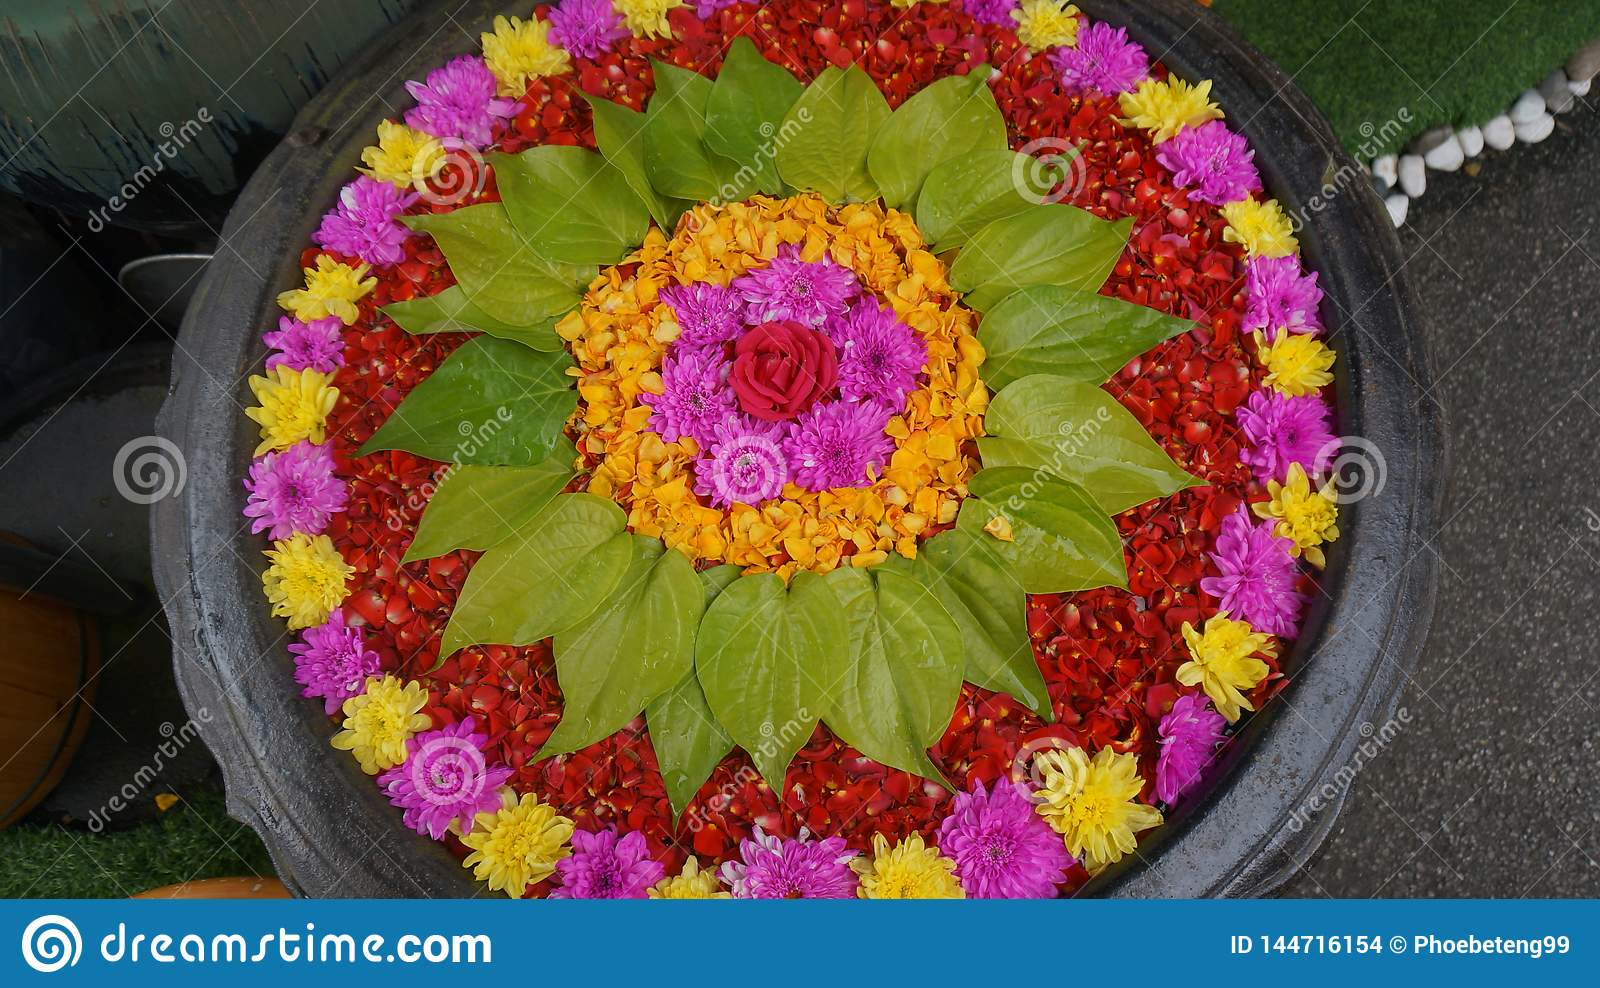 A Beautiful Pot Of Flowers For The Most Awesome People And God Stock Photo Image Of Celebrate Arrangement 144716154